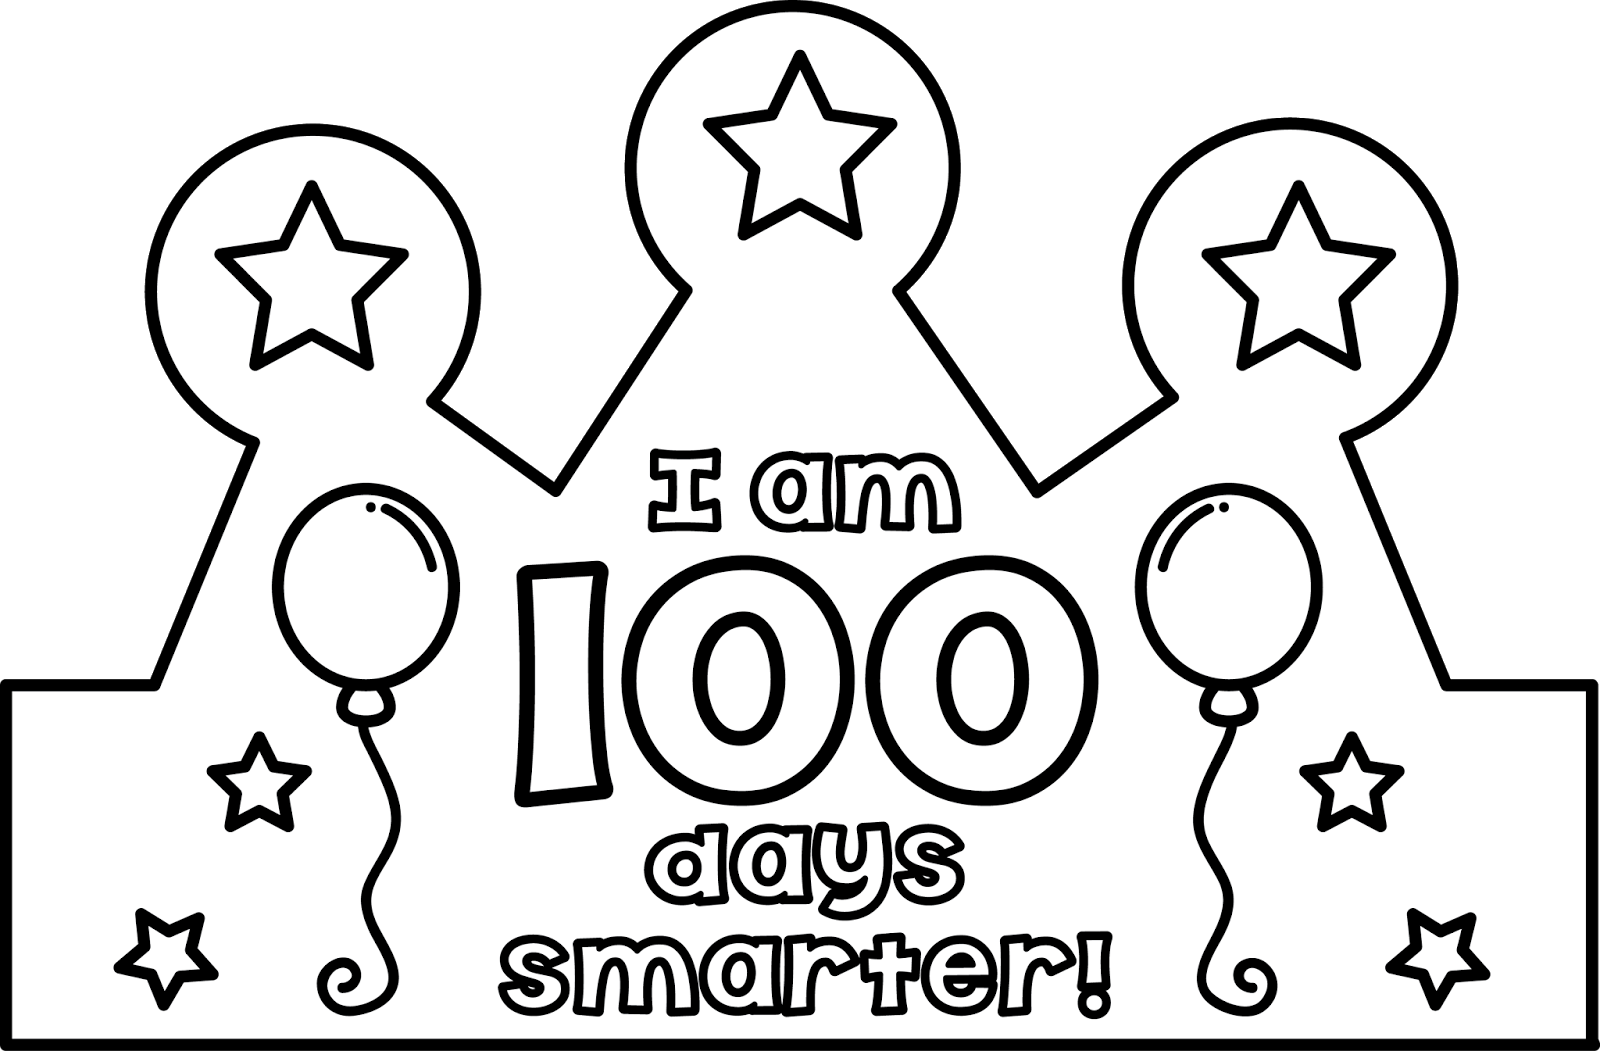 100th of clipart anniversary. Free download clip art